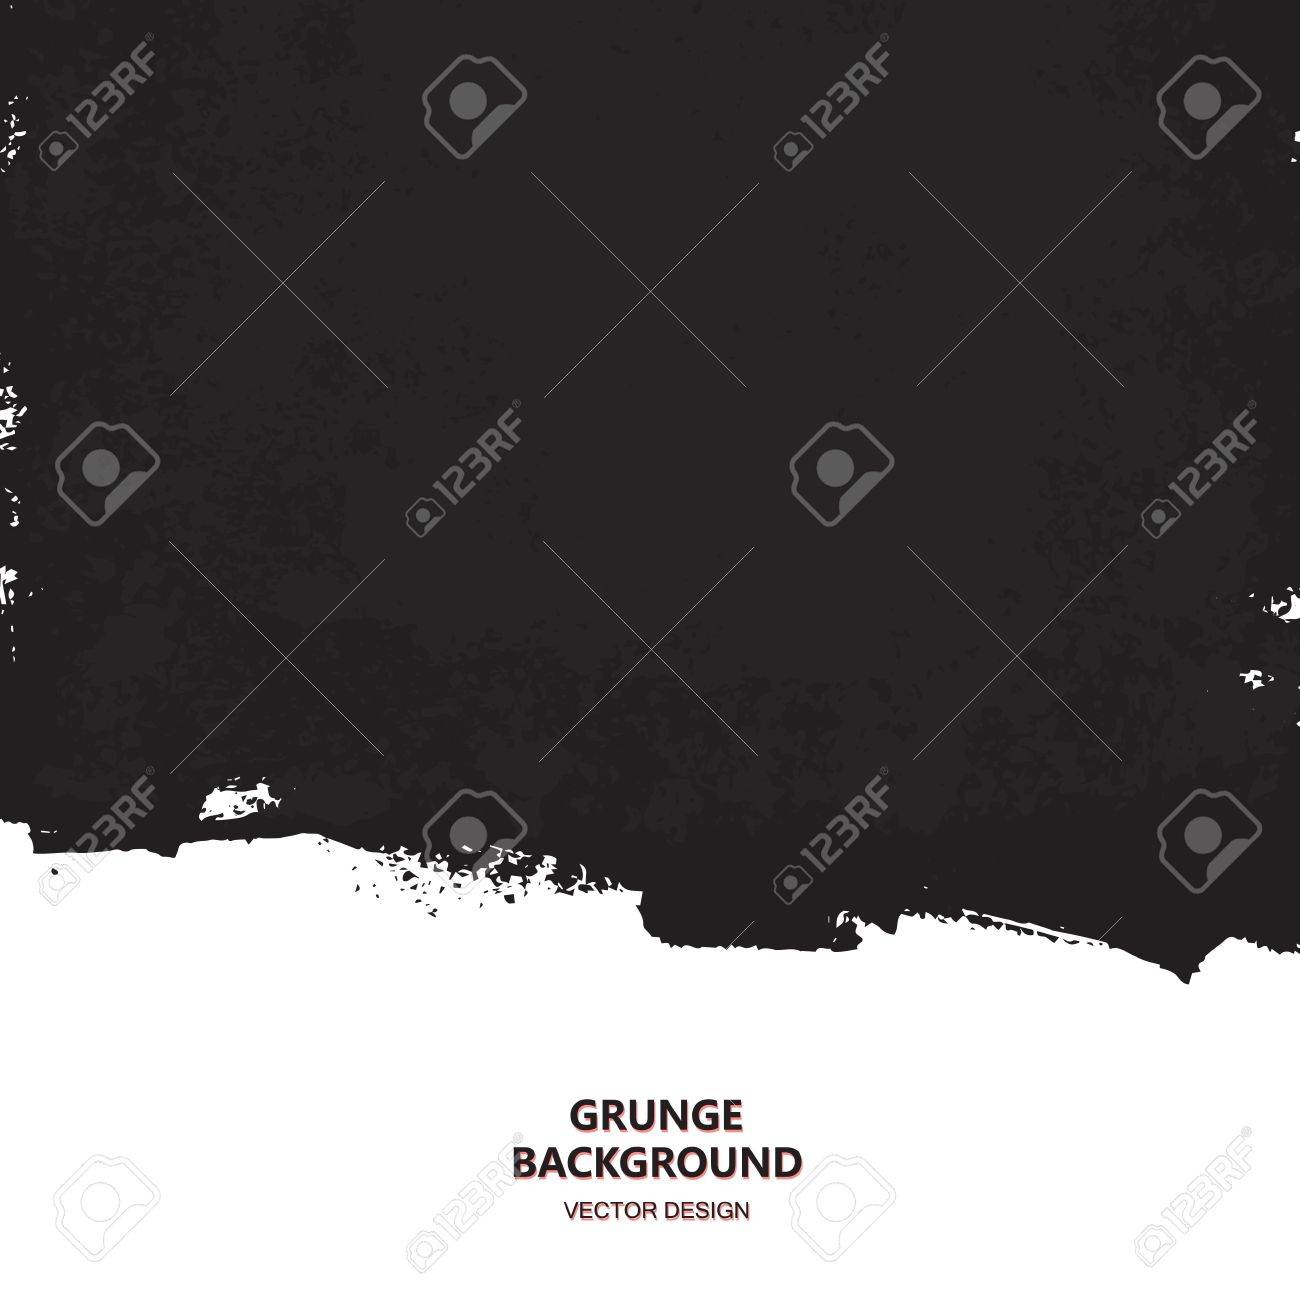 Black paint design element, place for text information, quote. Dirty grunge background. - 67323248